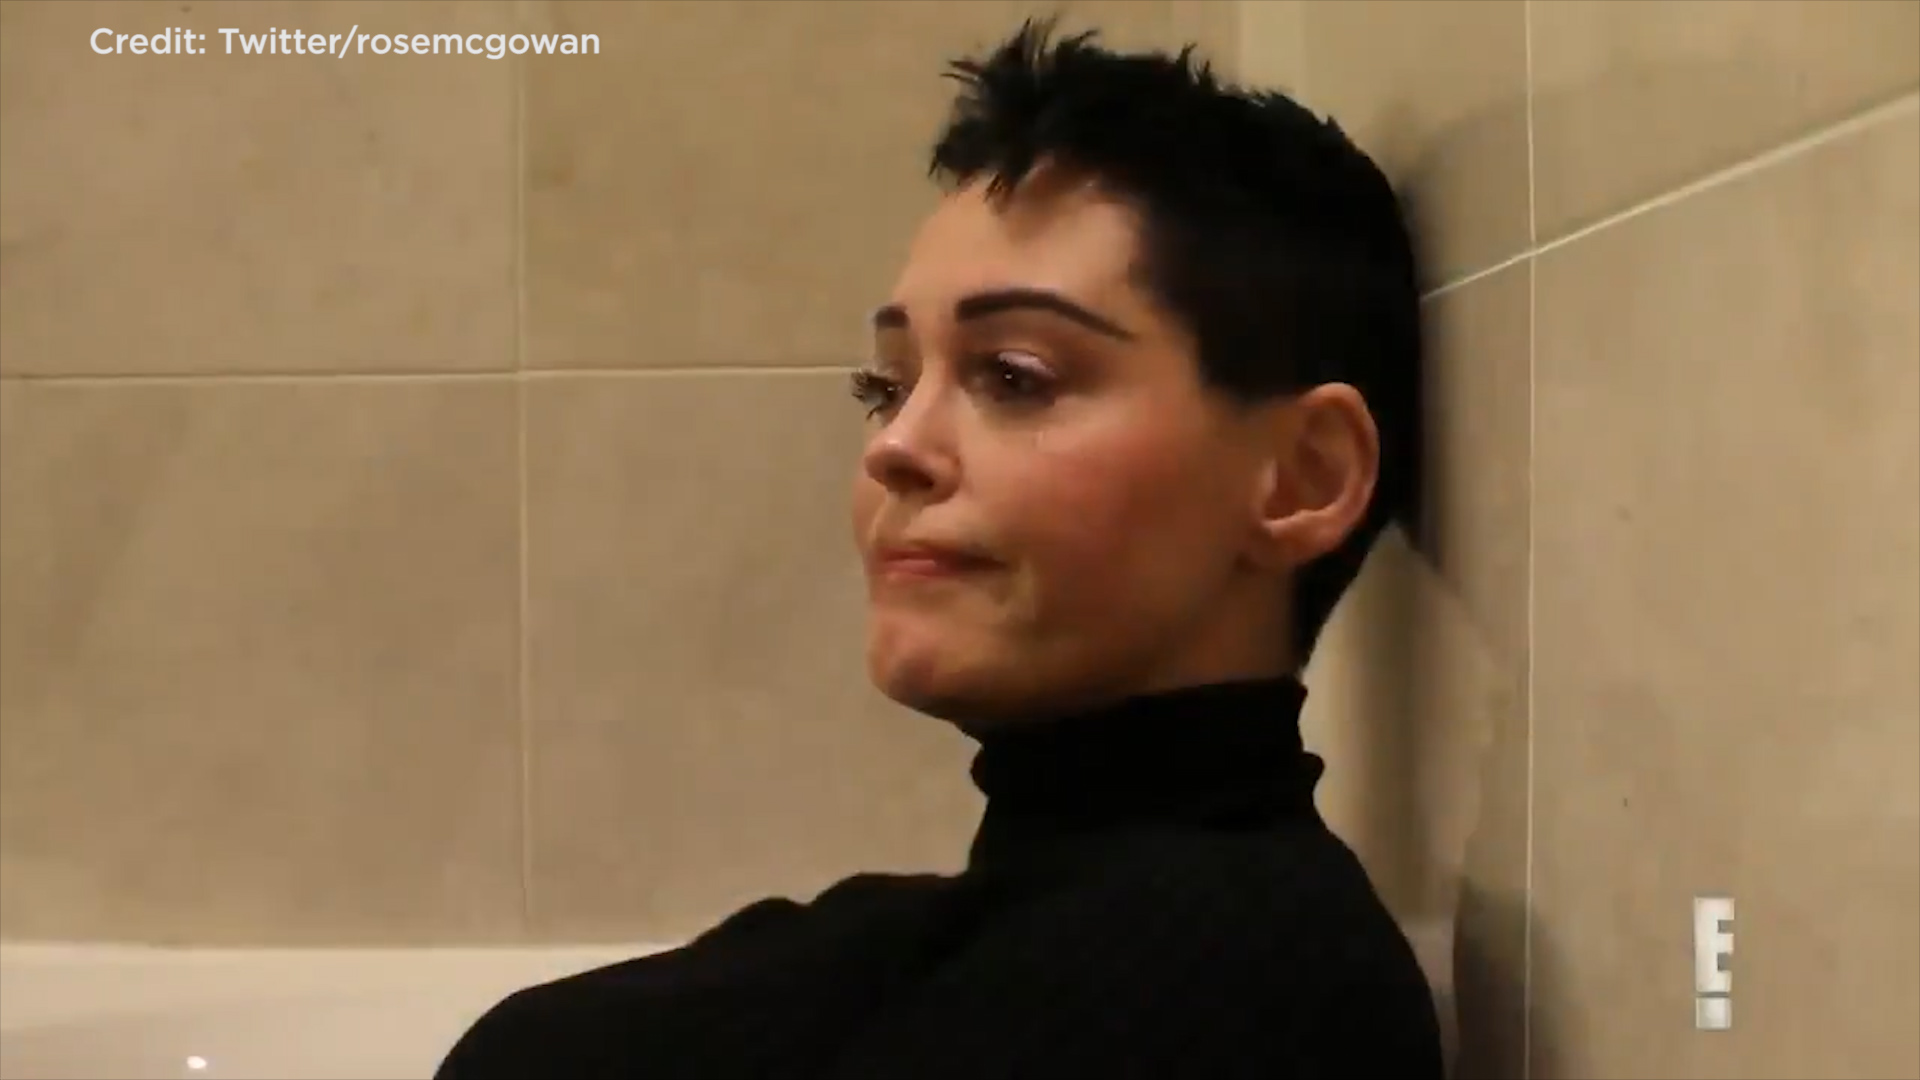 Watch The Trailer For Rose McGowan's New Docuseries About Life After #MeToo